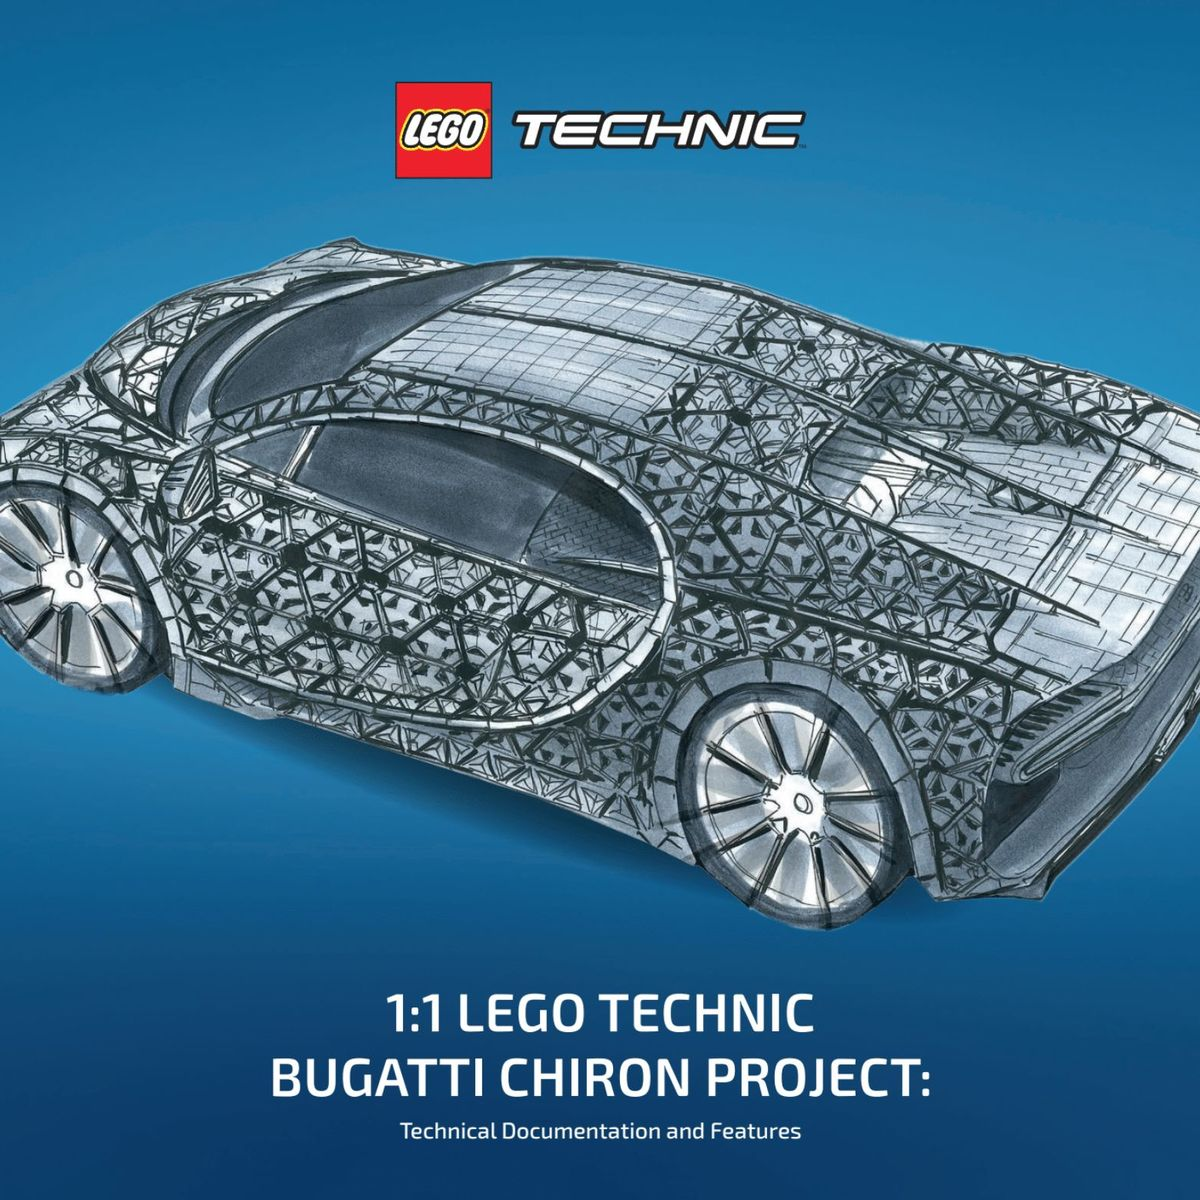 Sized, Drivable Lego Bugatti Created Using Over One Million Pieces